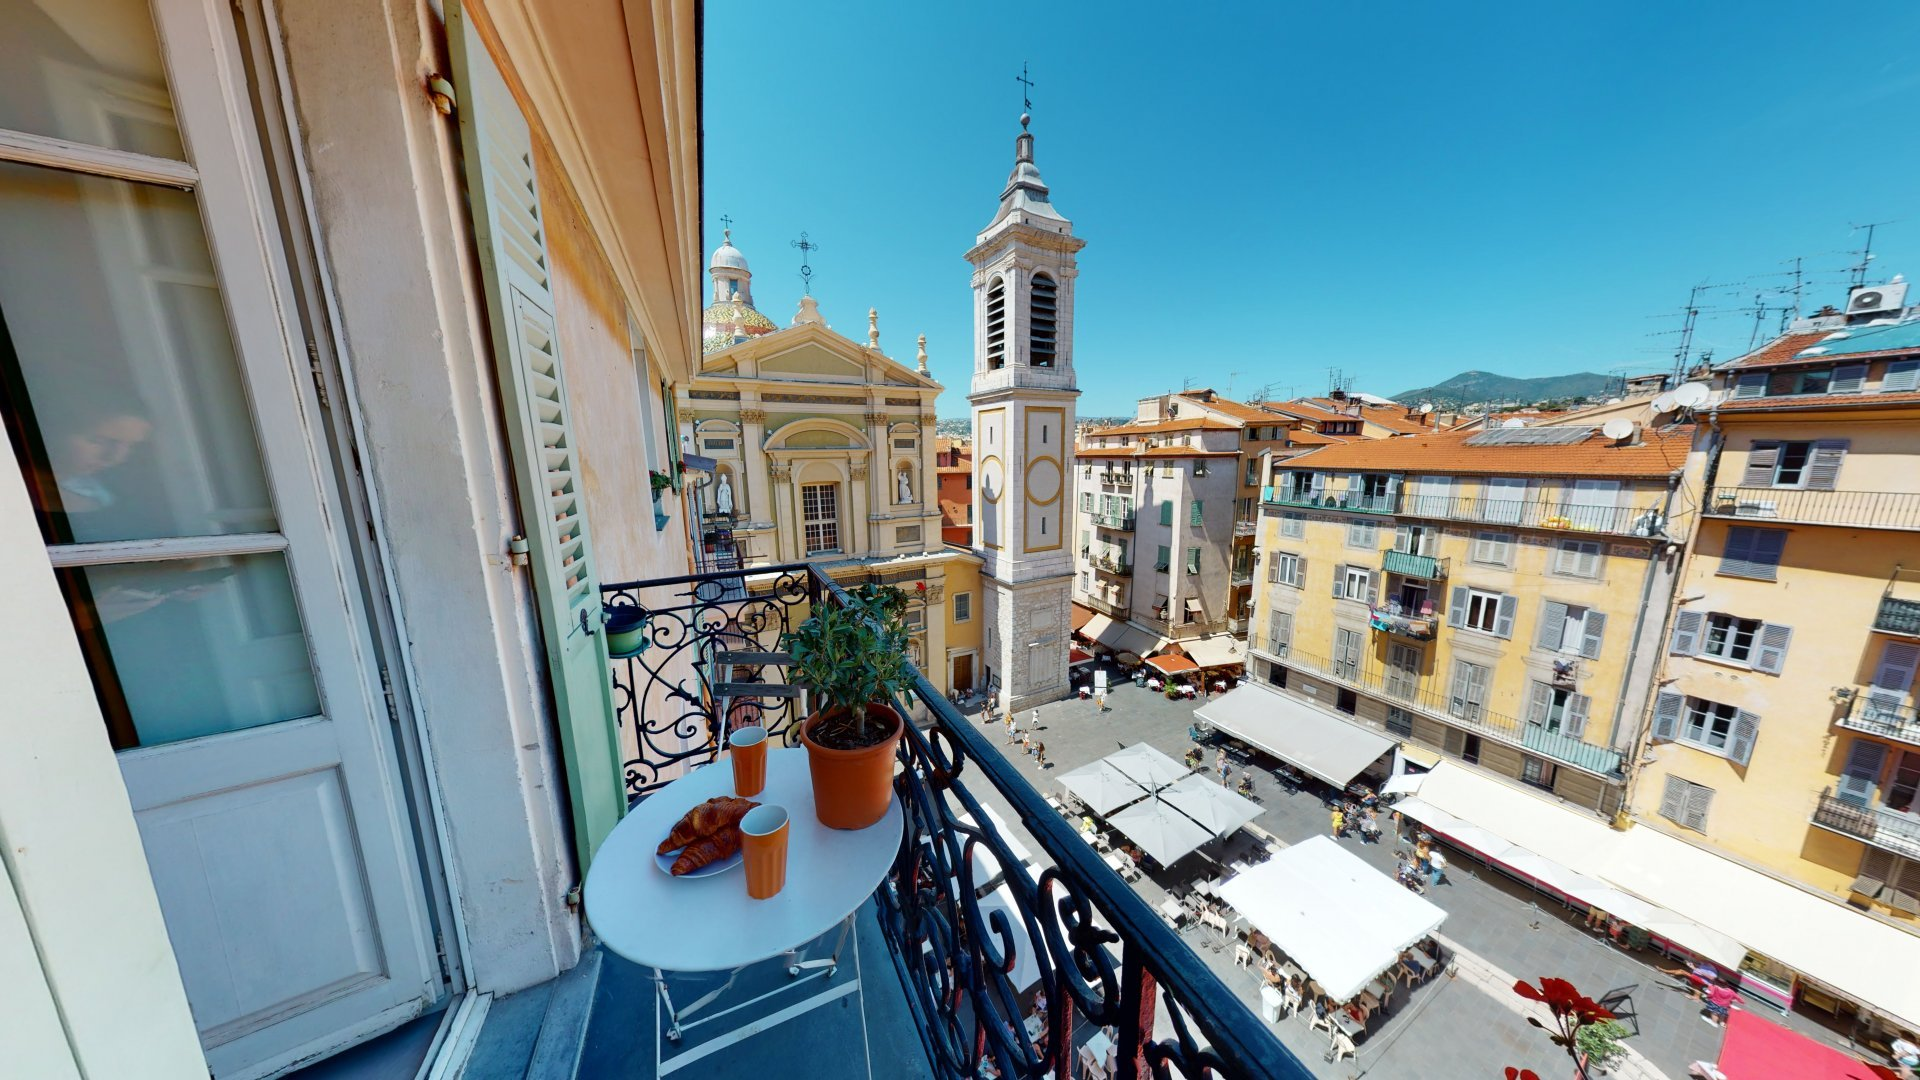 VIEUX NICE / PLACE ROSSETTI